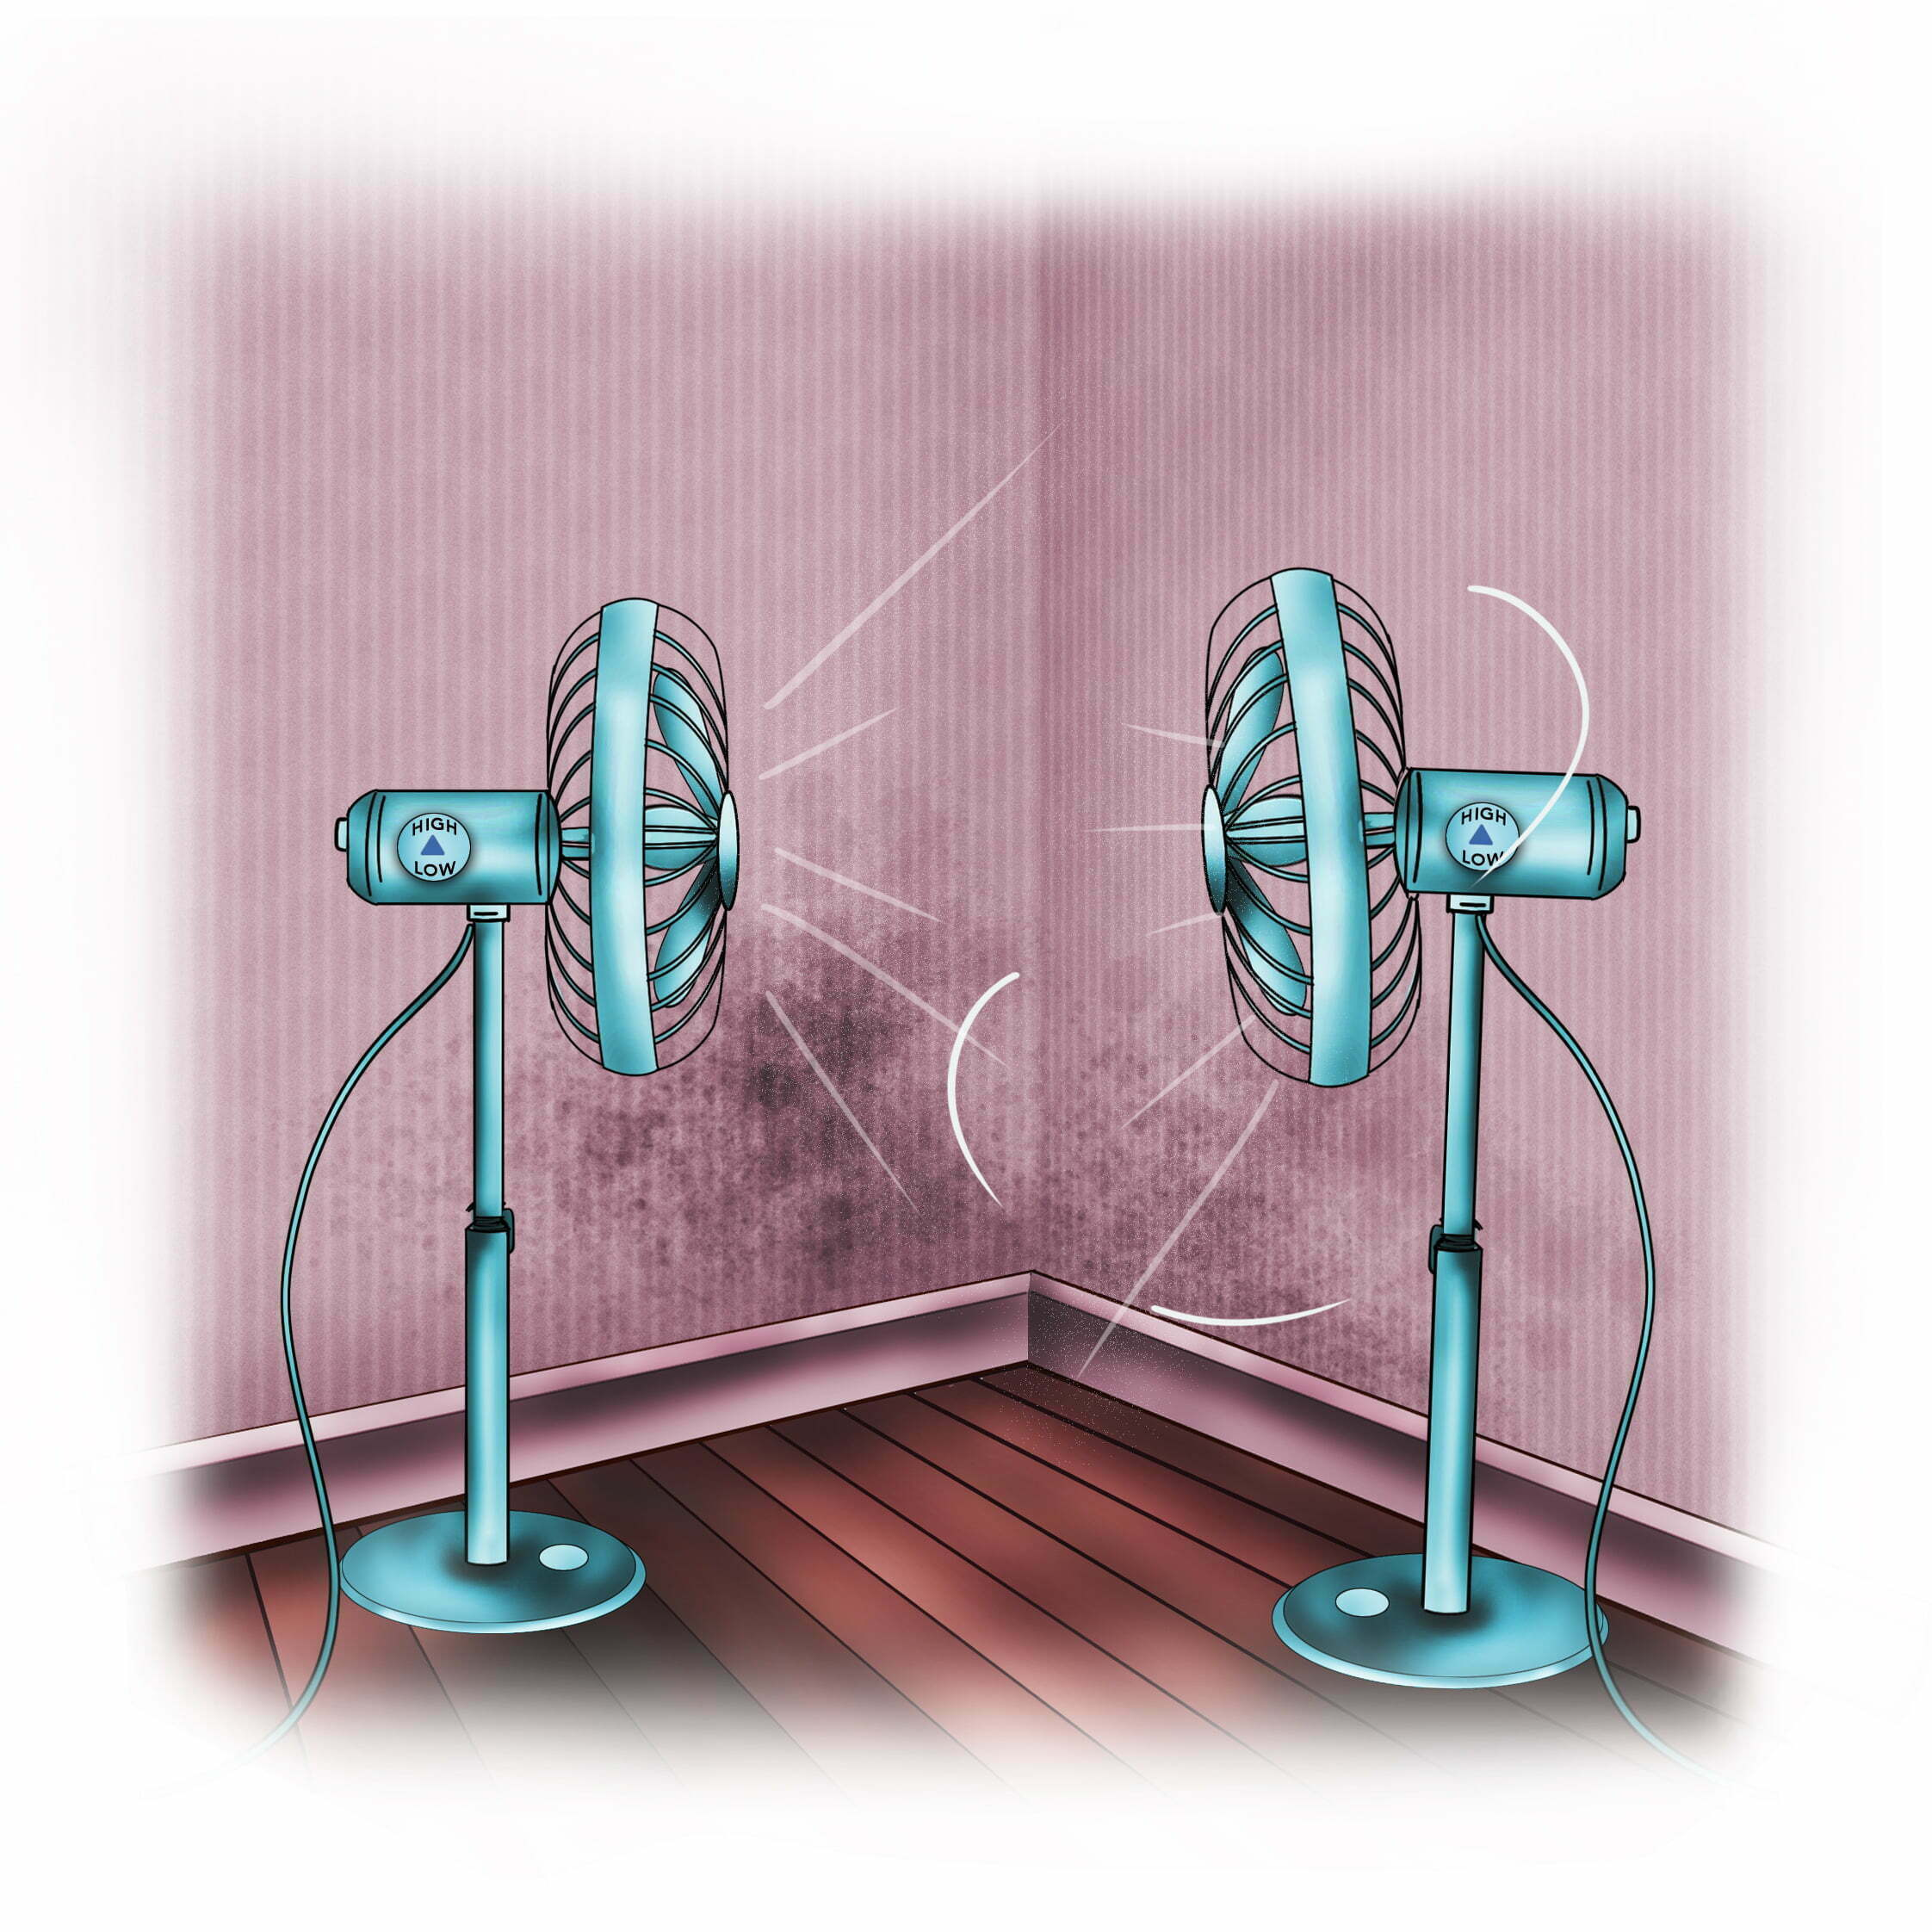 Grab a room fan to dry small damp spots